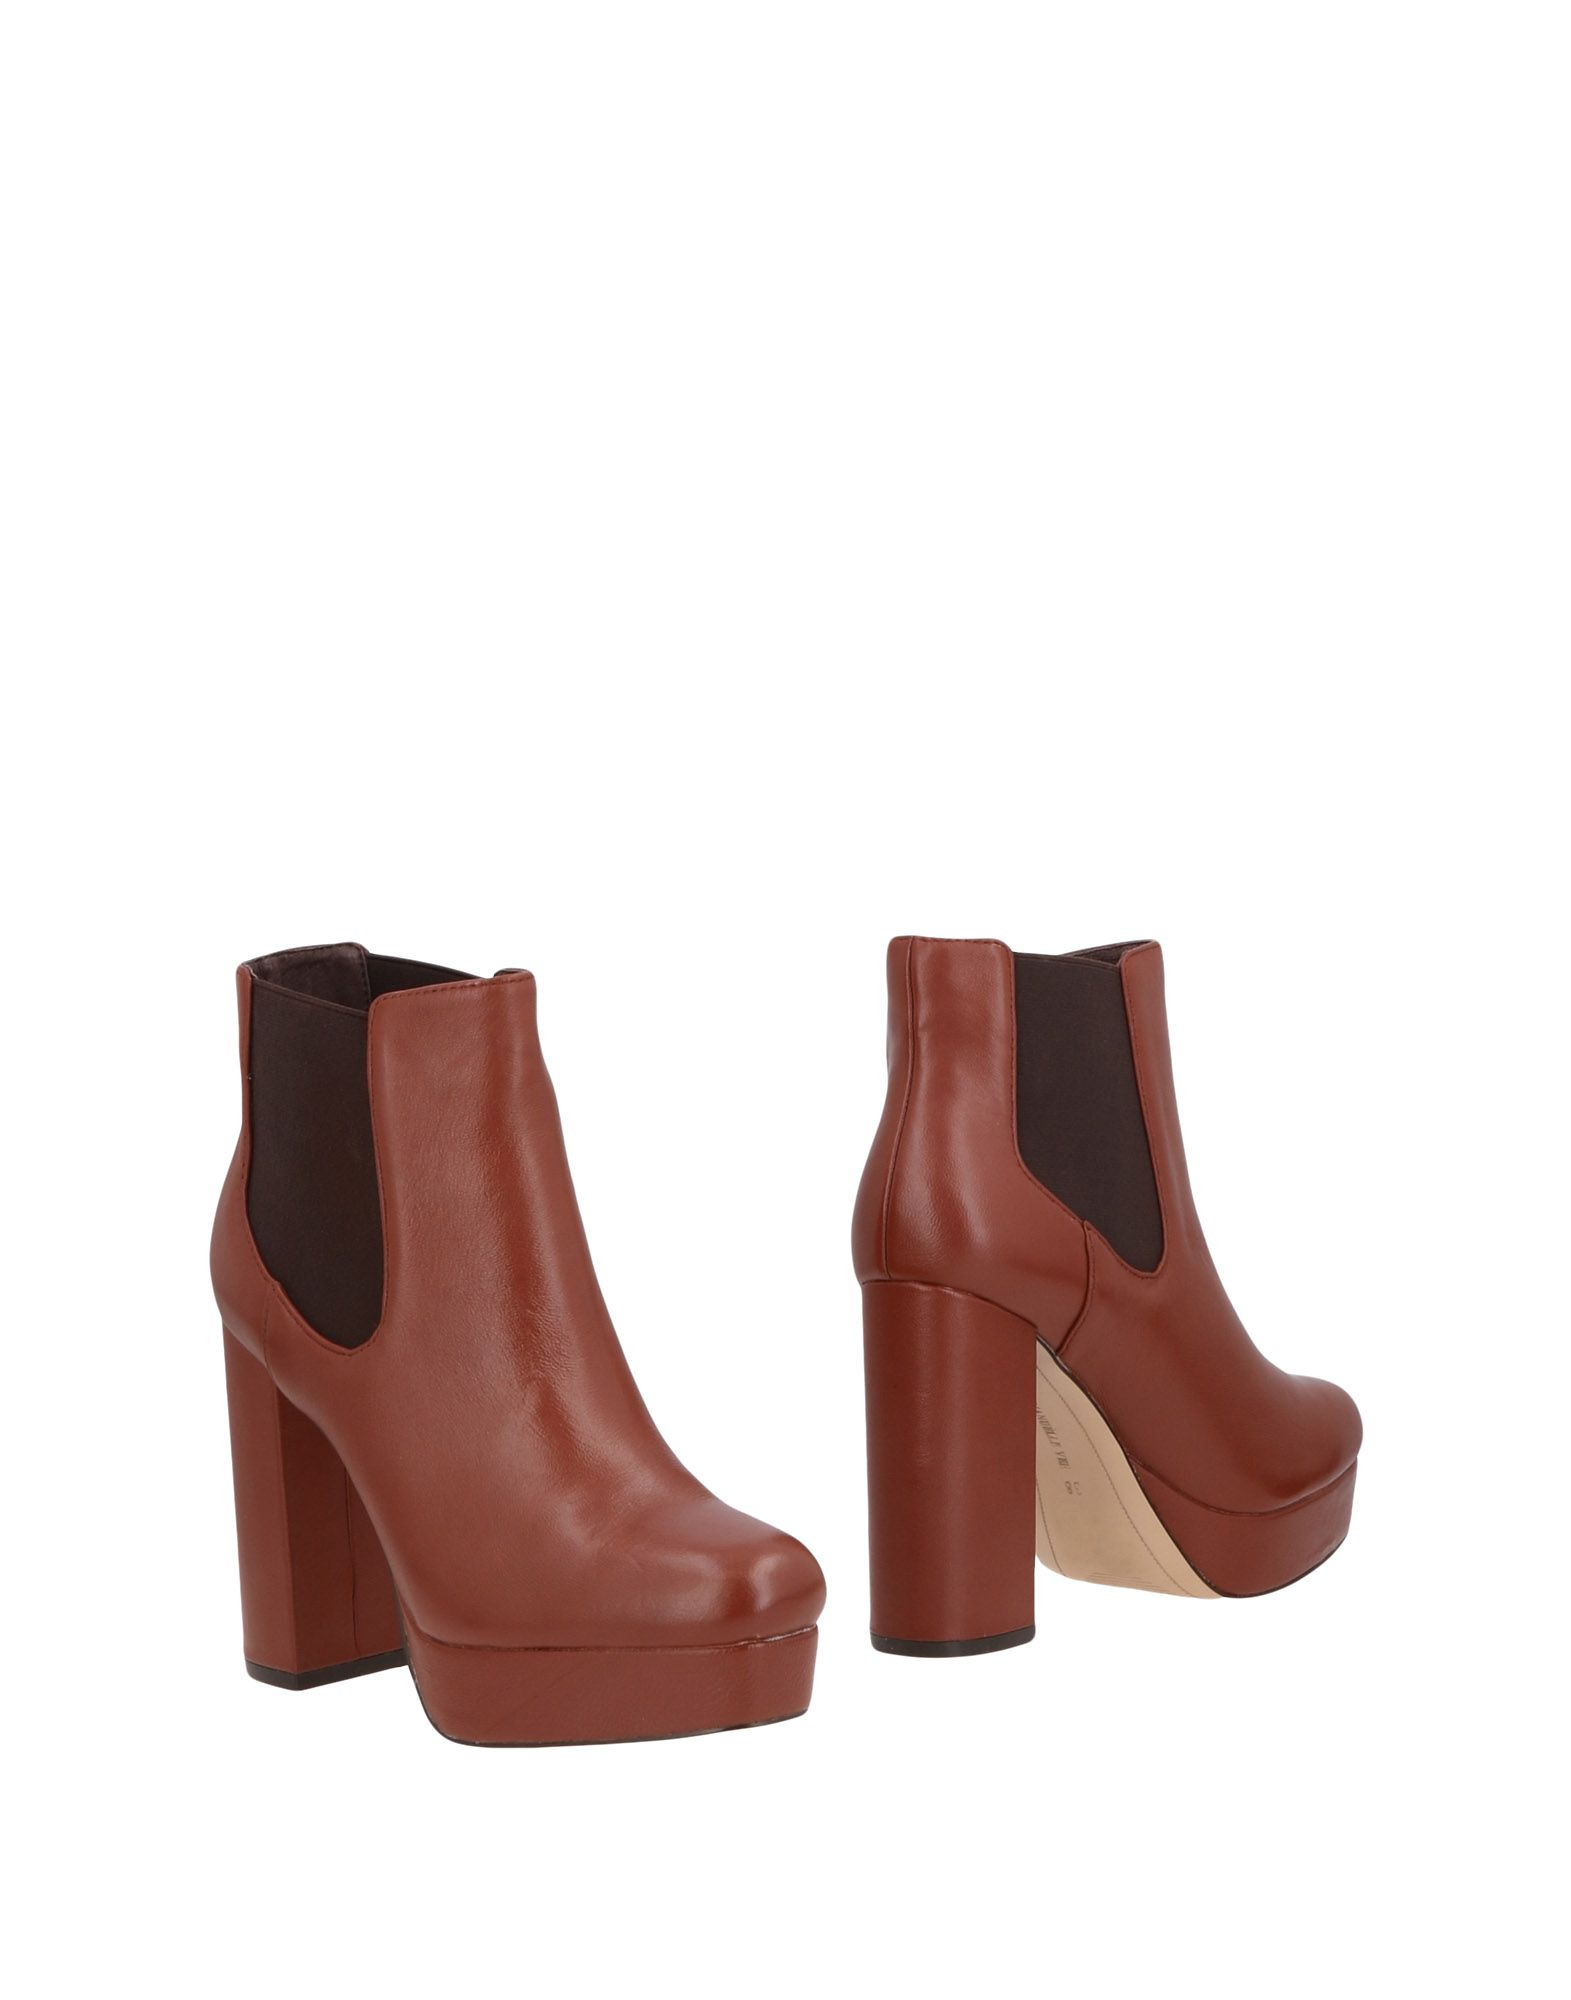 Emanuélle Vee Ankle Boot - Boots Women Emanuélle Vee Ankle Boots - online on  Australia - 11495527MG f3426d